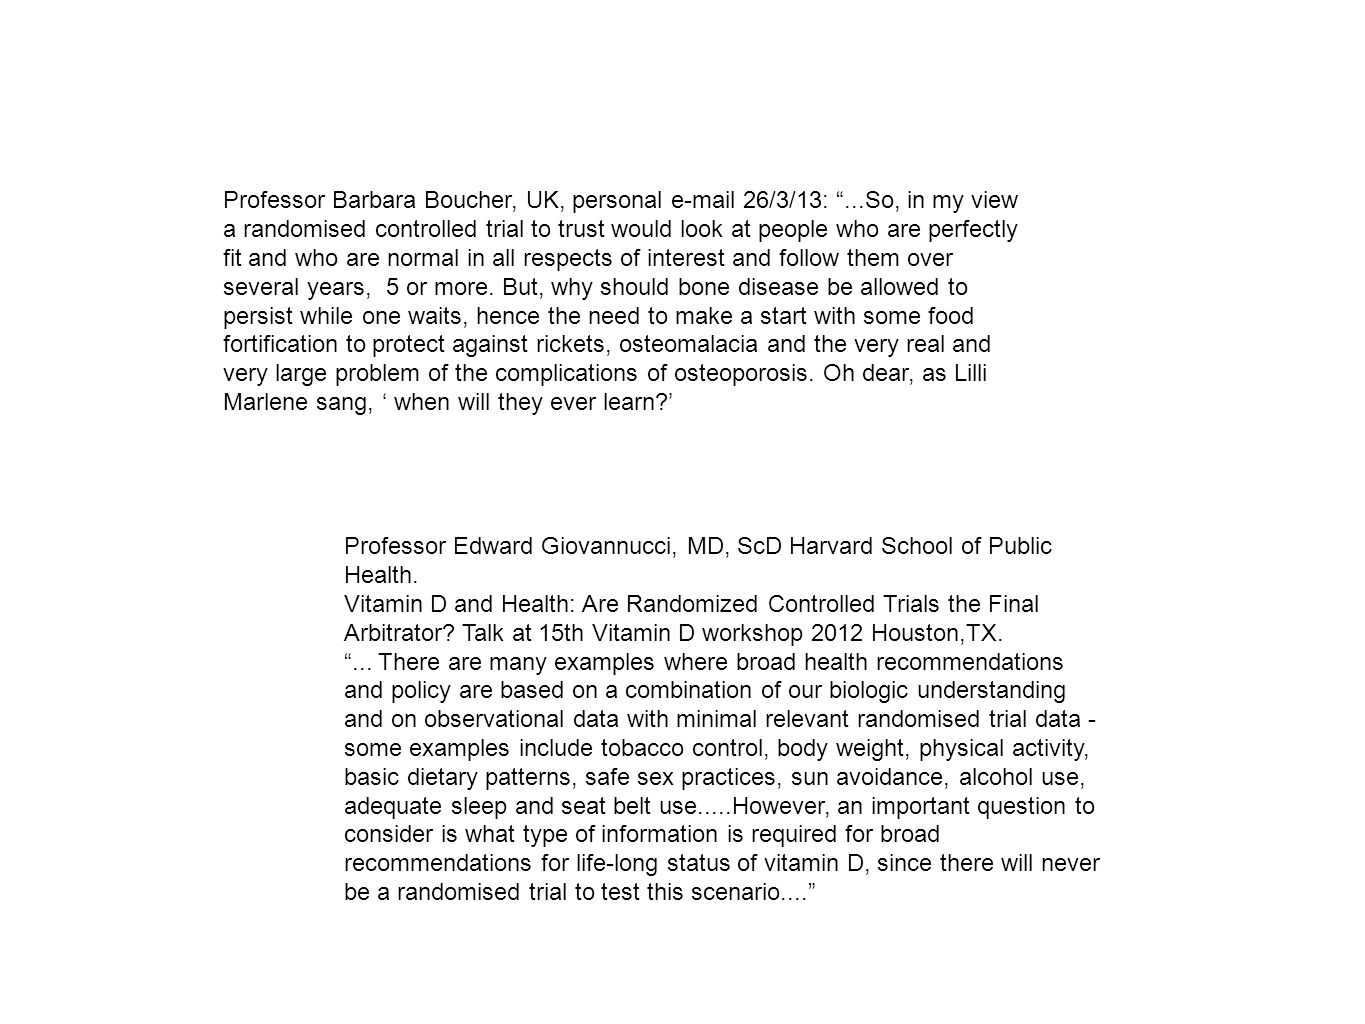 Professor Barbara Boucher, UK, personal  26/3/13: ...So, in my view a randomised controlled trial to trust would look at people who are perfectly fit and who are normal in all respects of interest and follow them over several years, 5 or more.